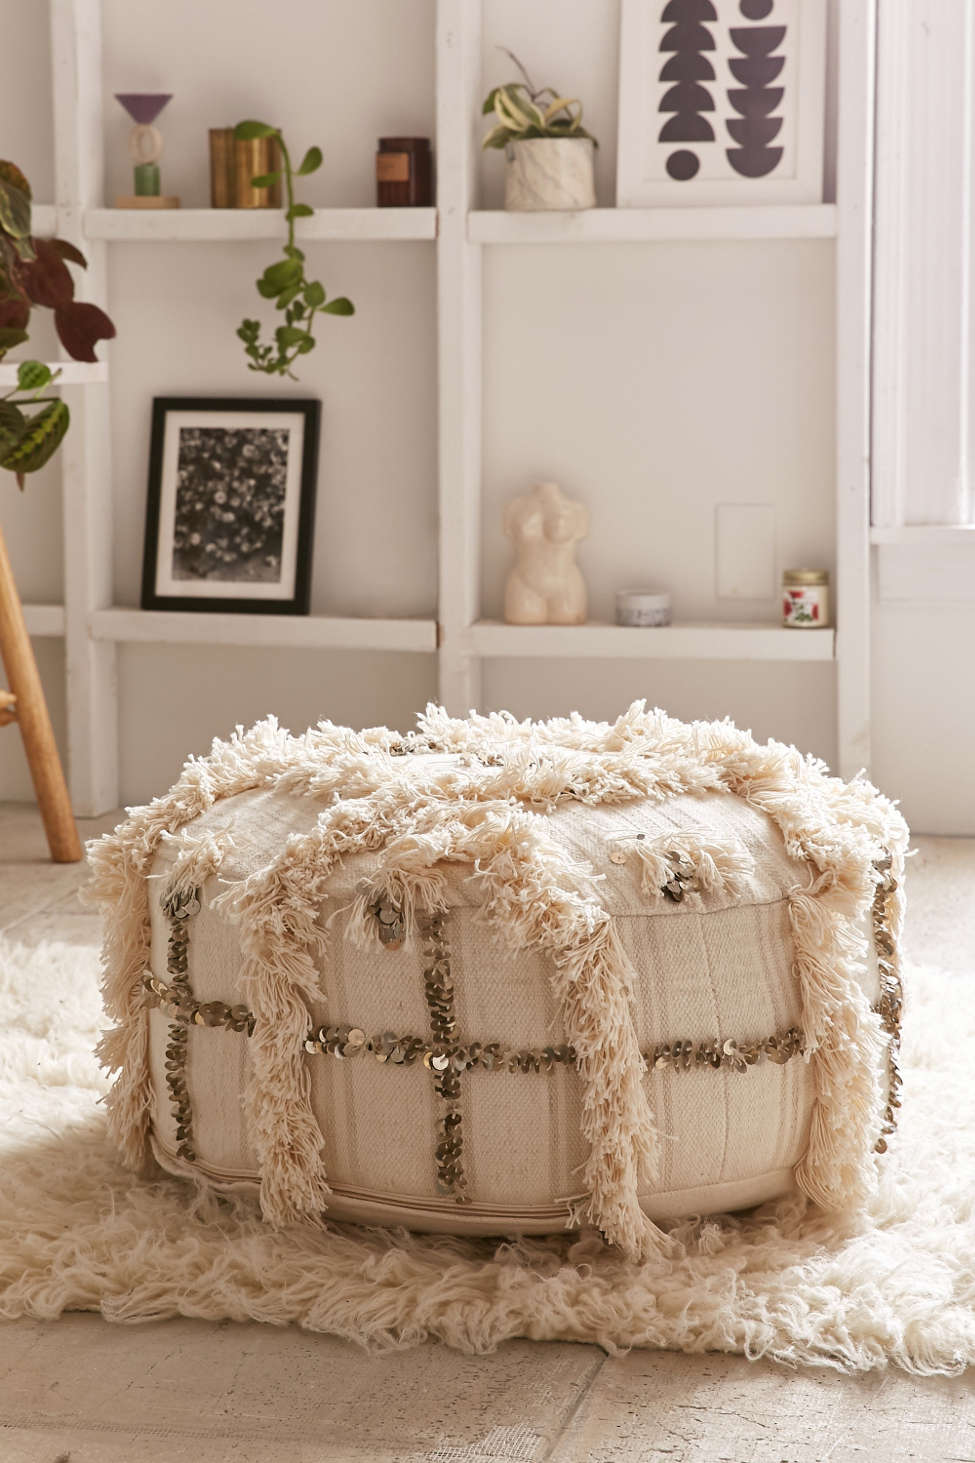 Slide View: 1: Moroccan Coin Pillow Pouf